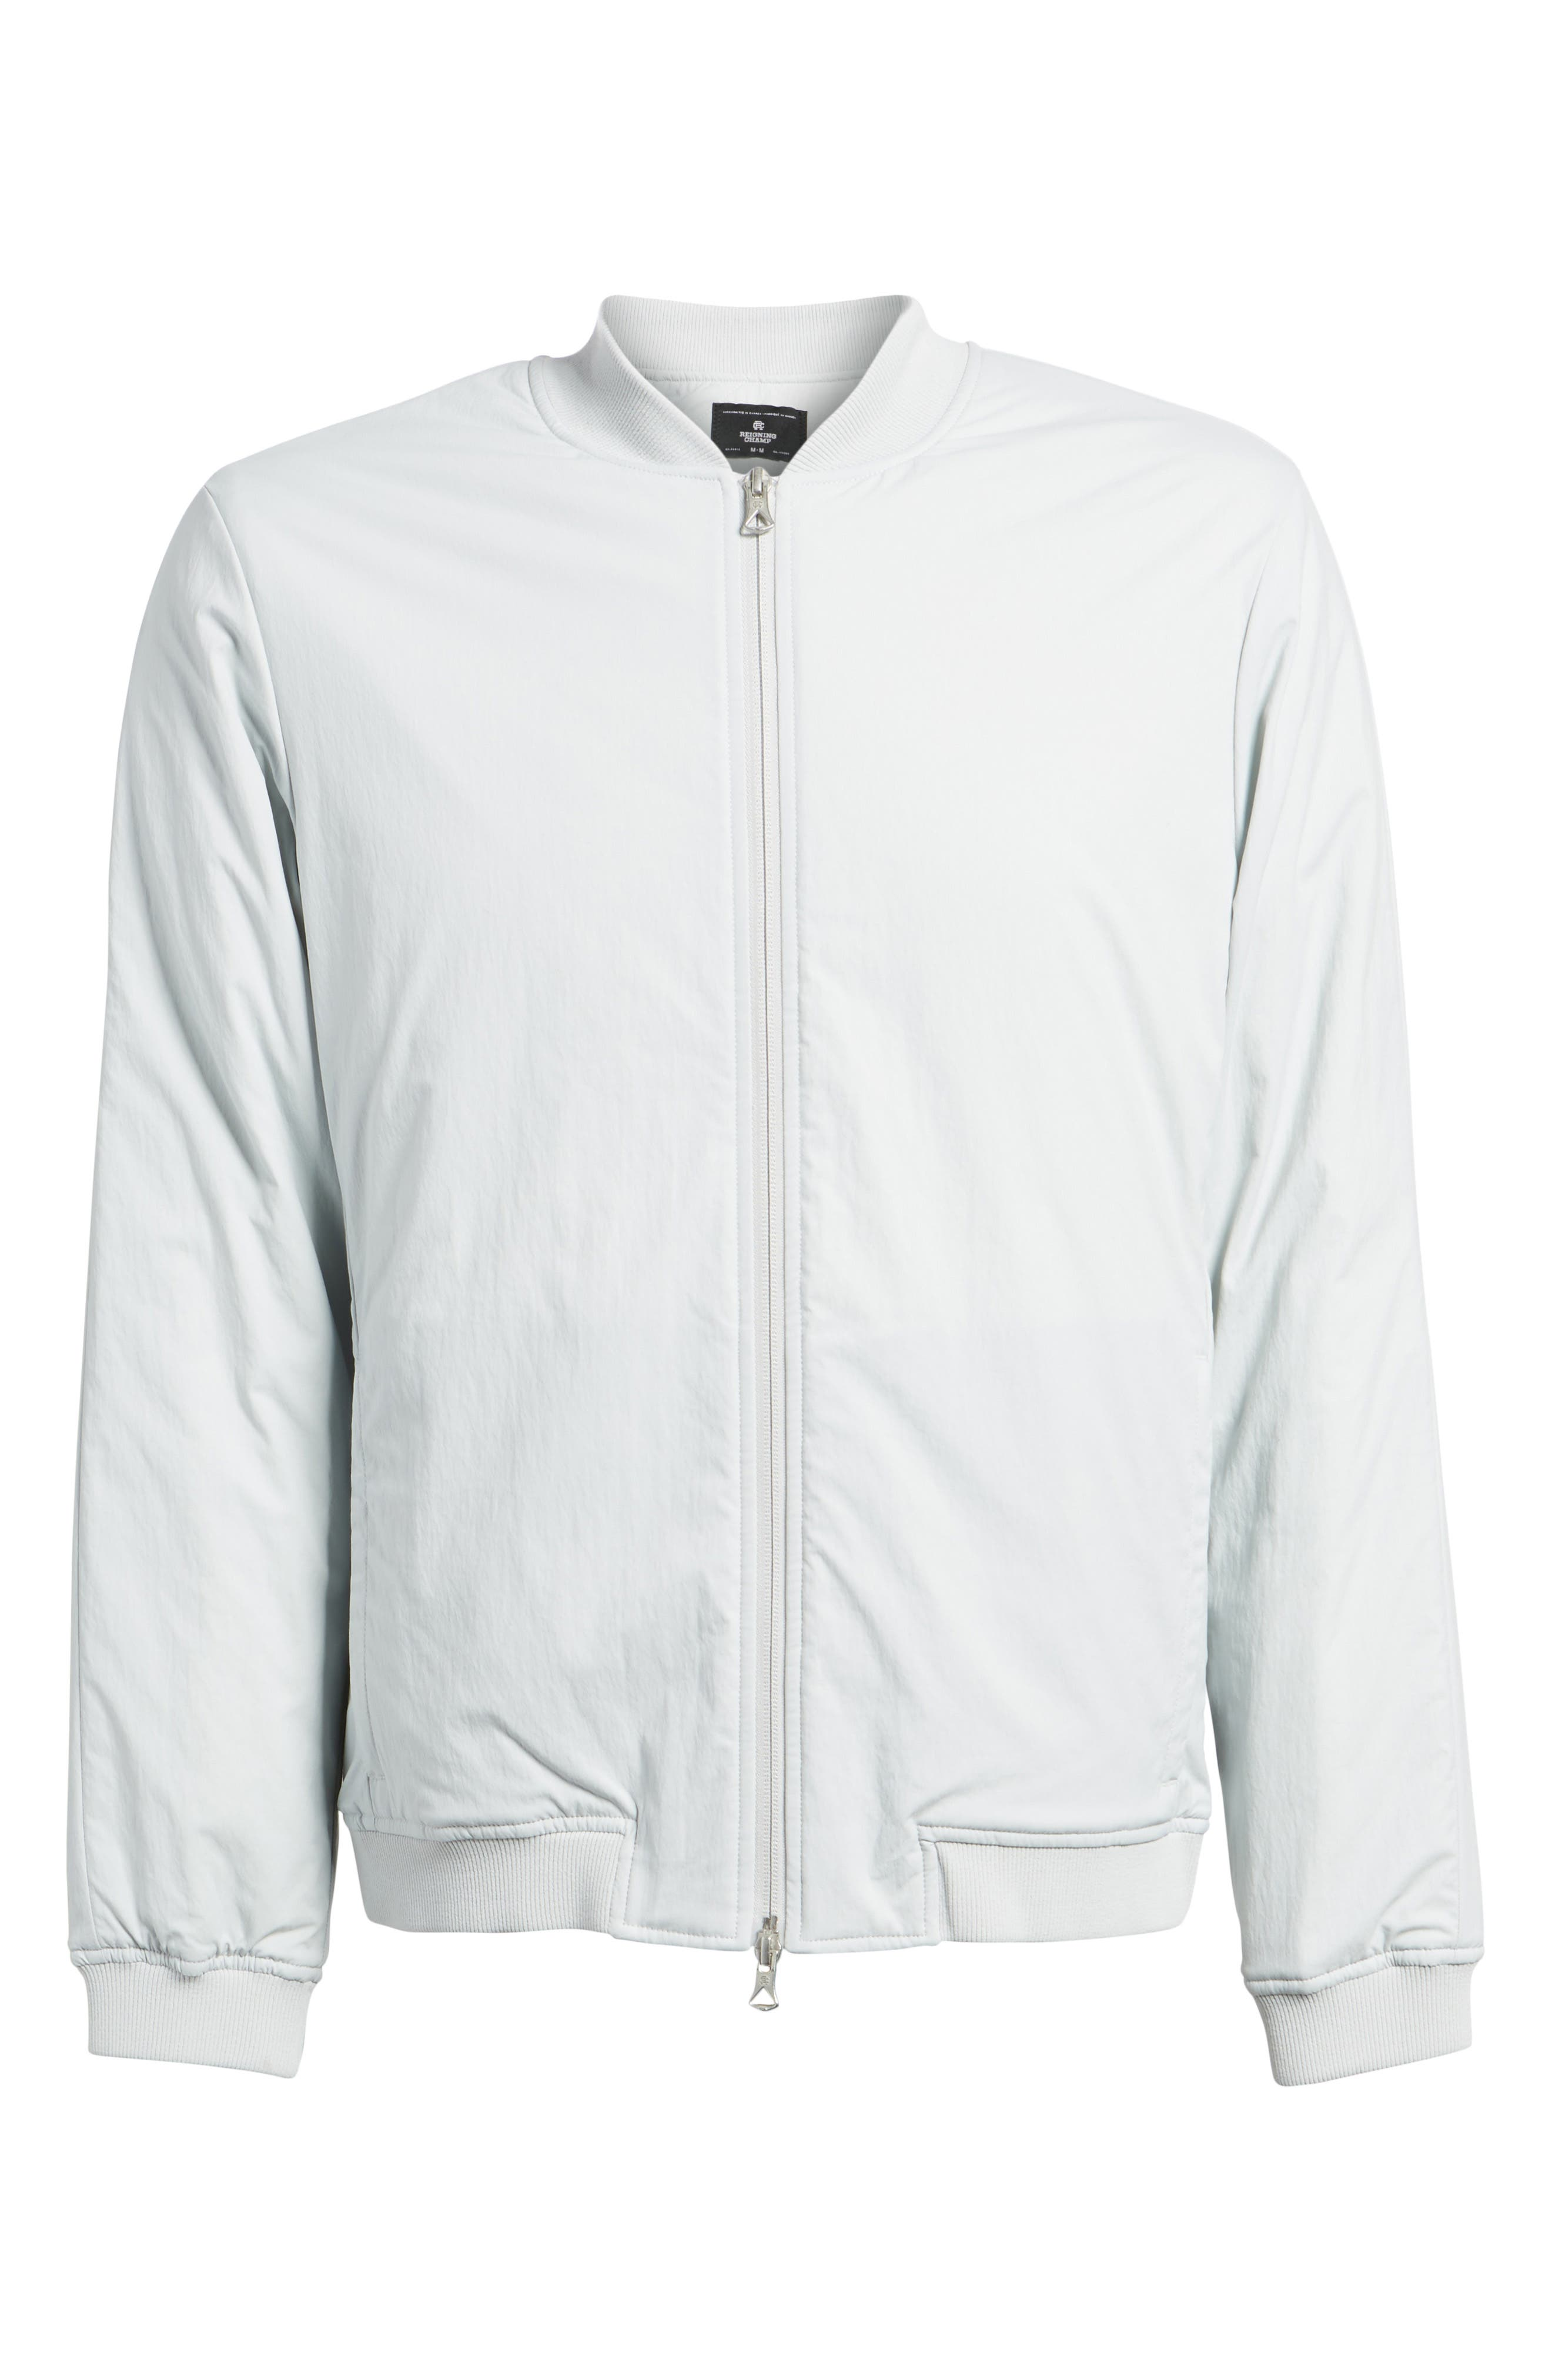 Insulated Bomber Jacket,                             Alternate thumbnail 5, color,                             053